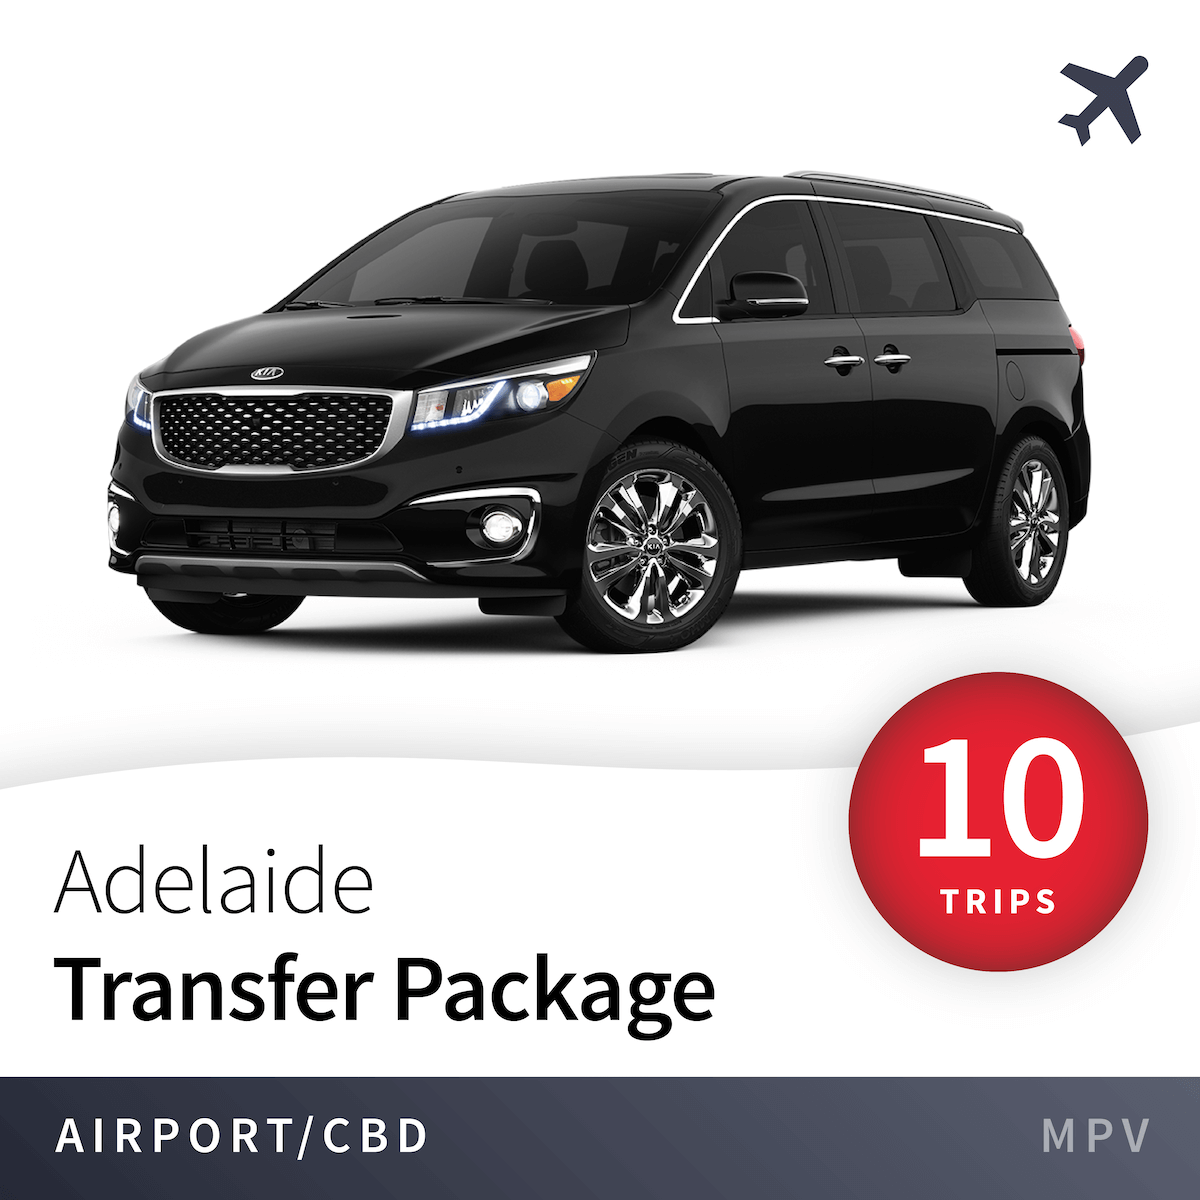 Adelaide Airport Transfer Package - MPV (10 Trips) 1